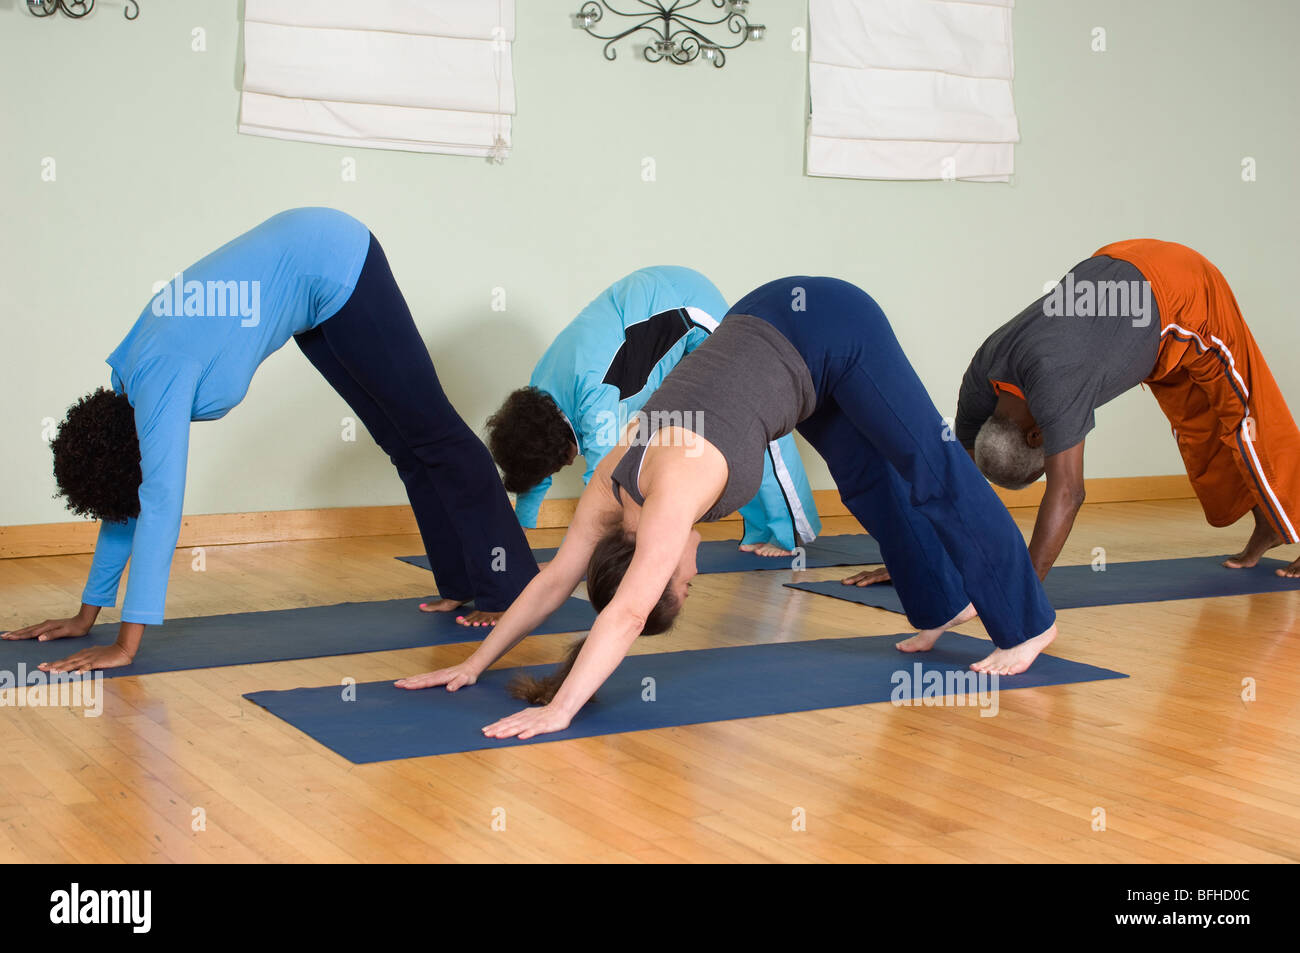 Yoga Class Stretching - Stock Image